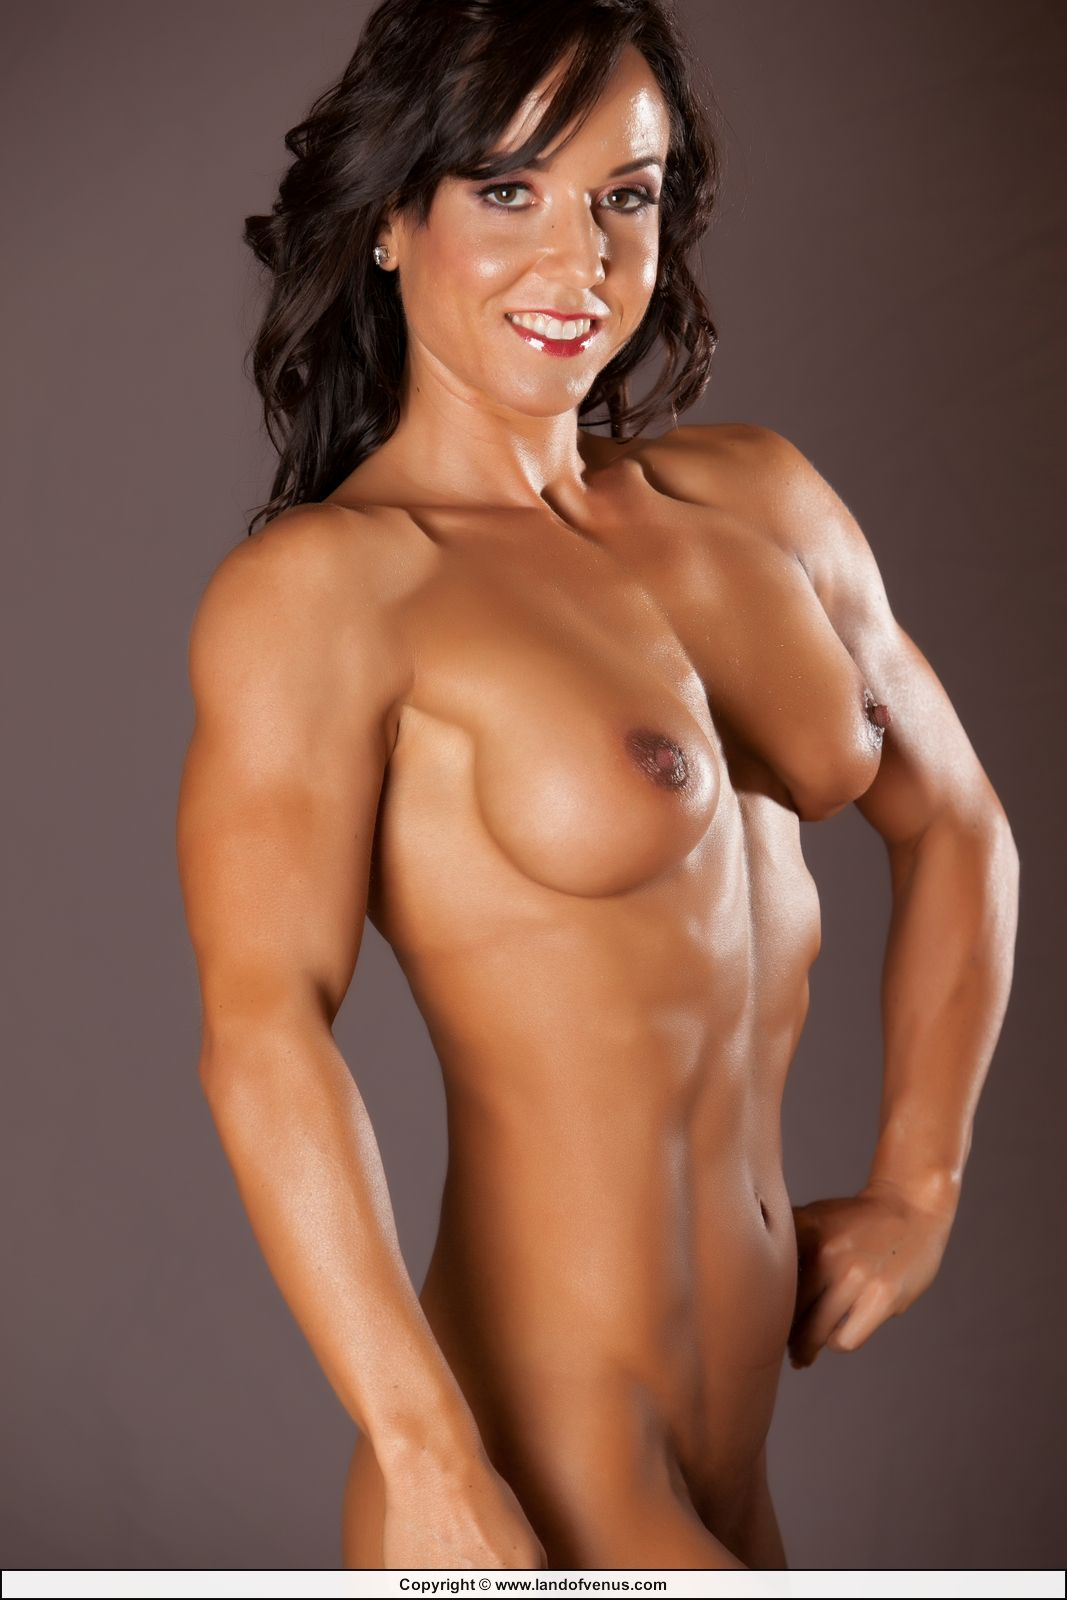 What body builder girl xxx name